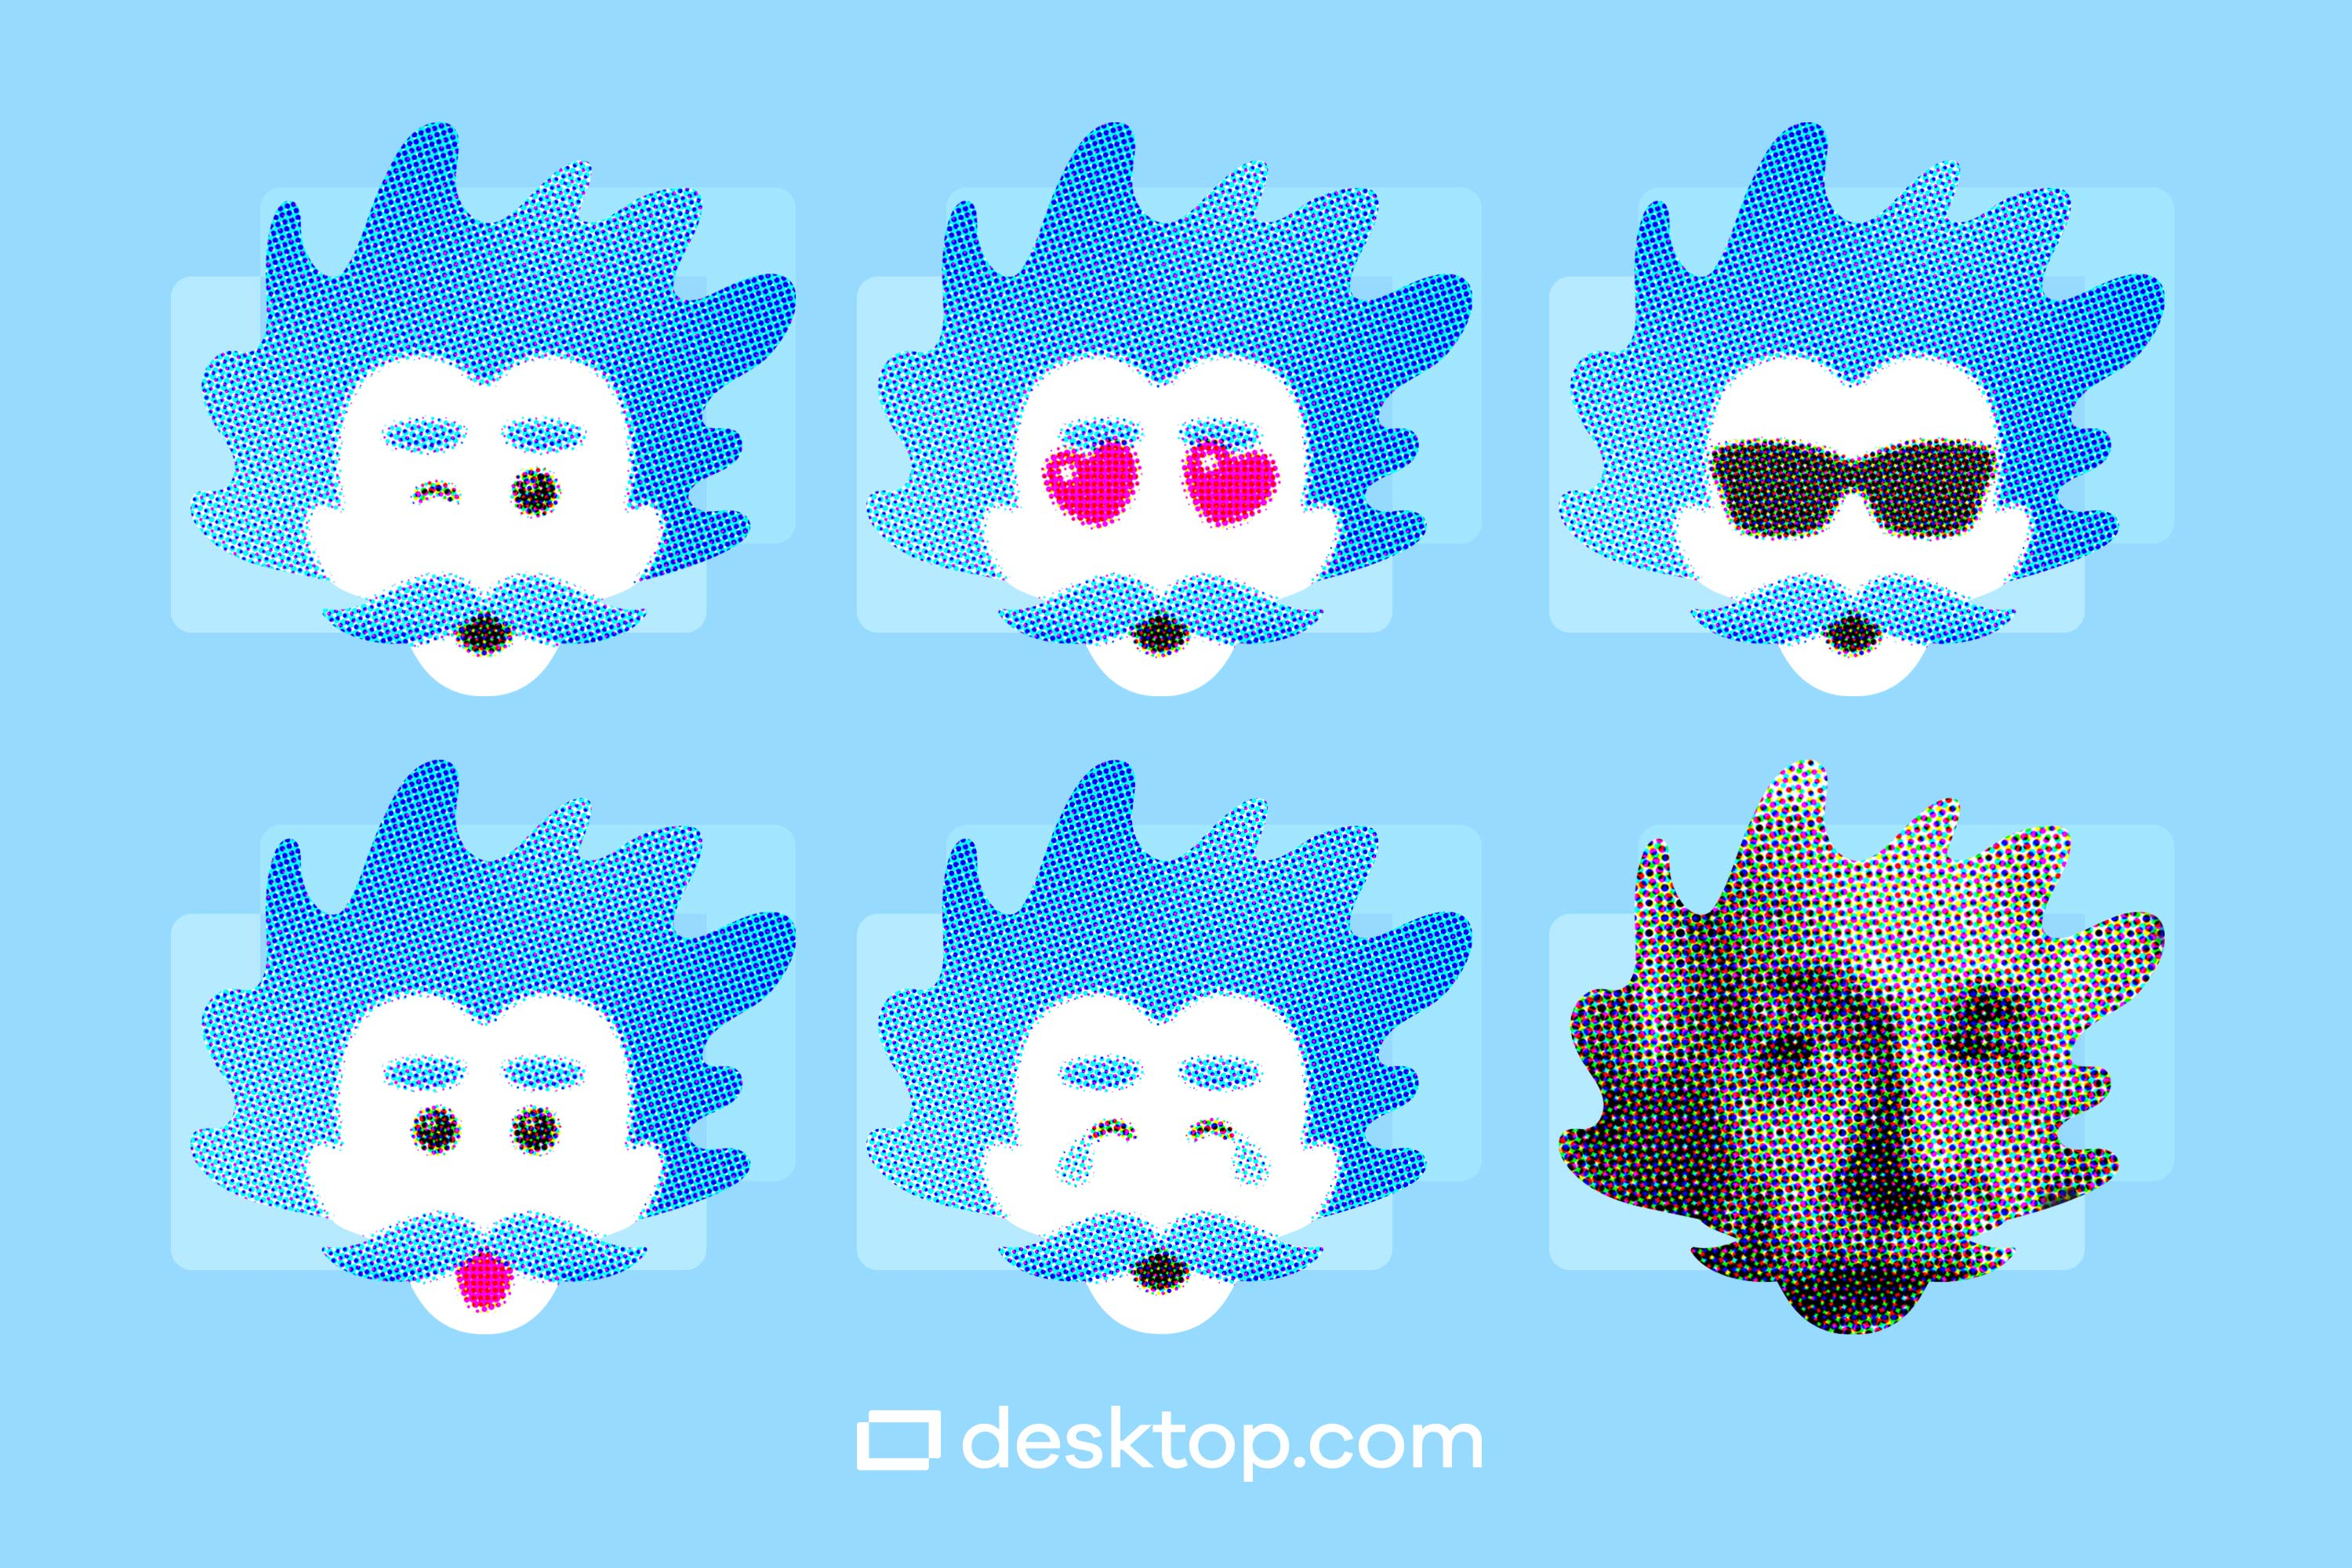 6 different emoticons with the Albot avatar